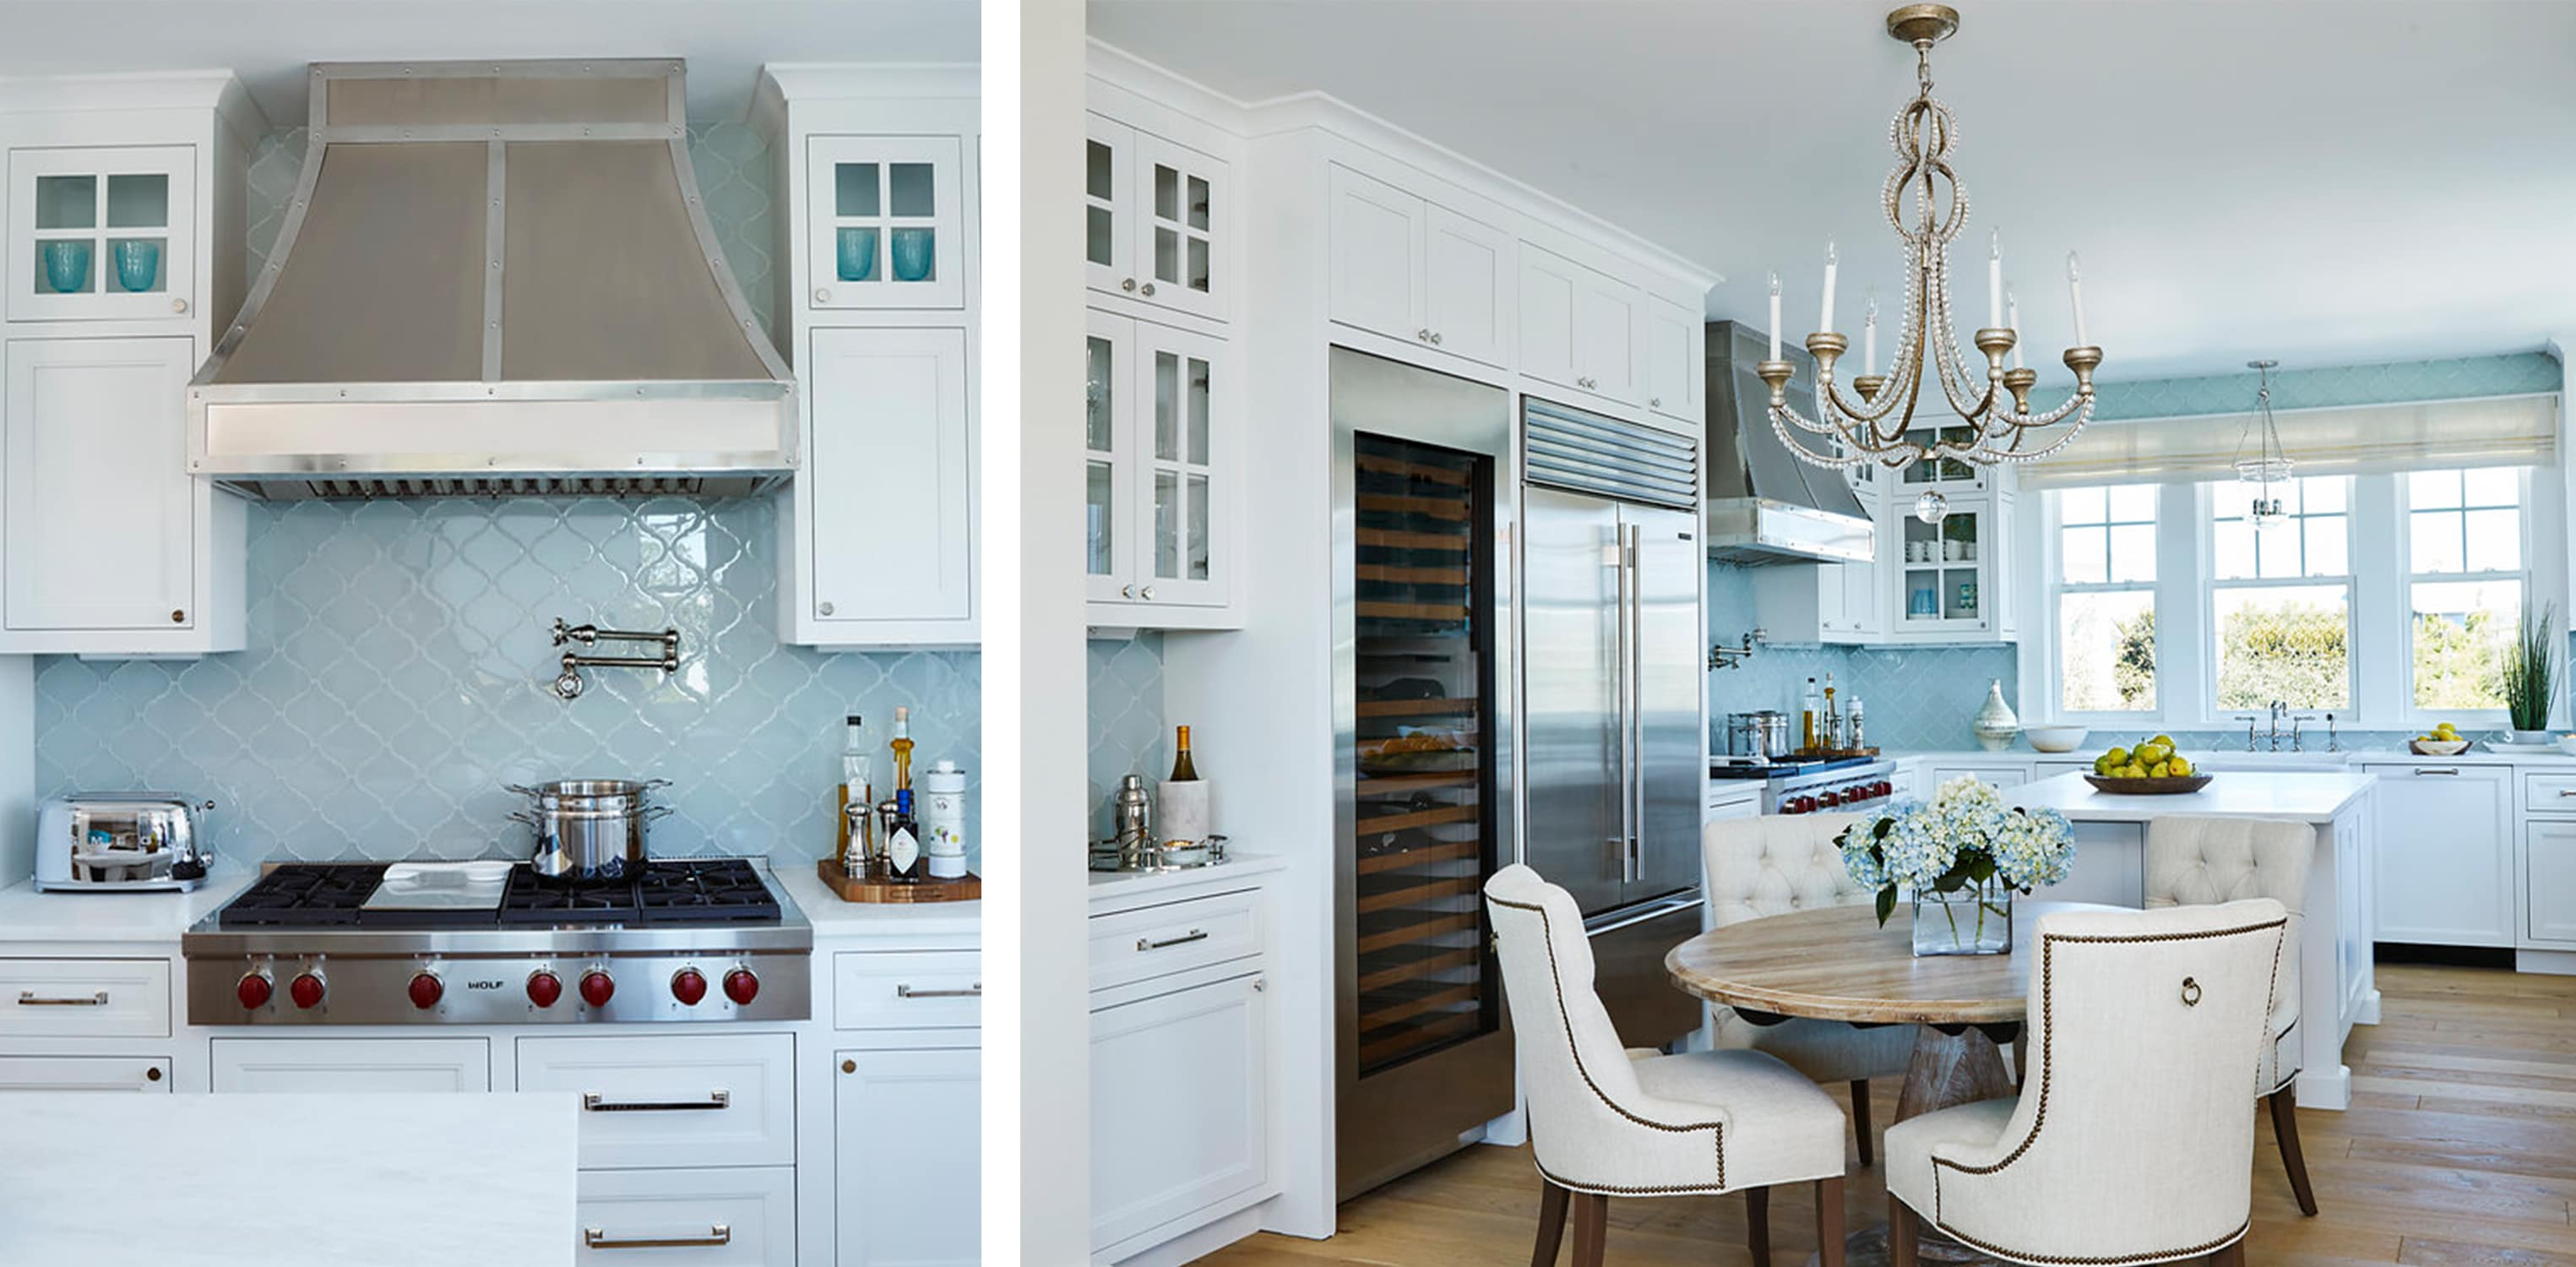 luxe florida beach house kitchen with light blue tile, chandelier, wolf range, and pot filler - darci hether new york